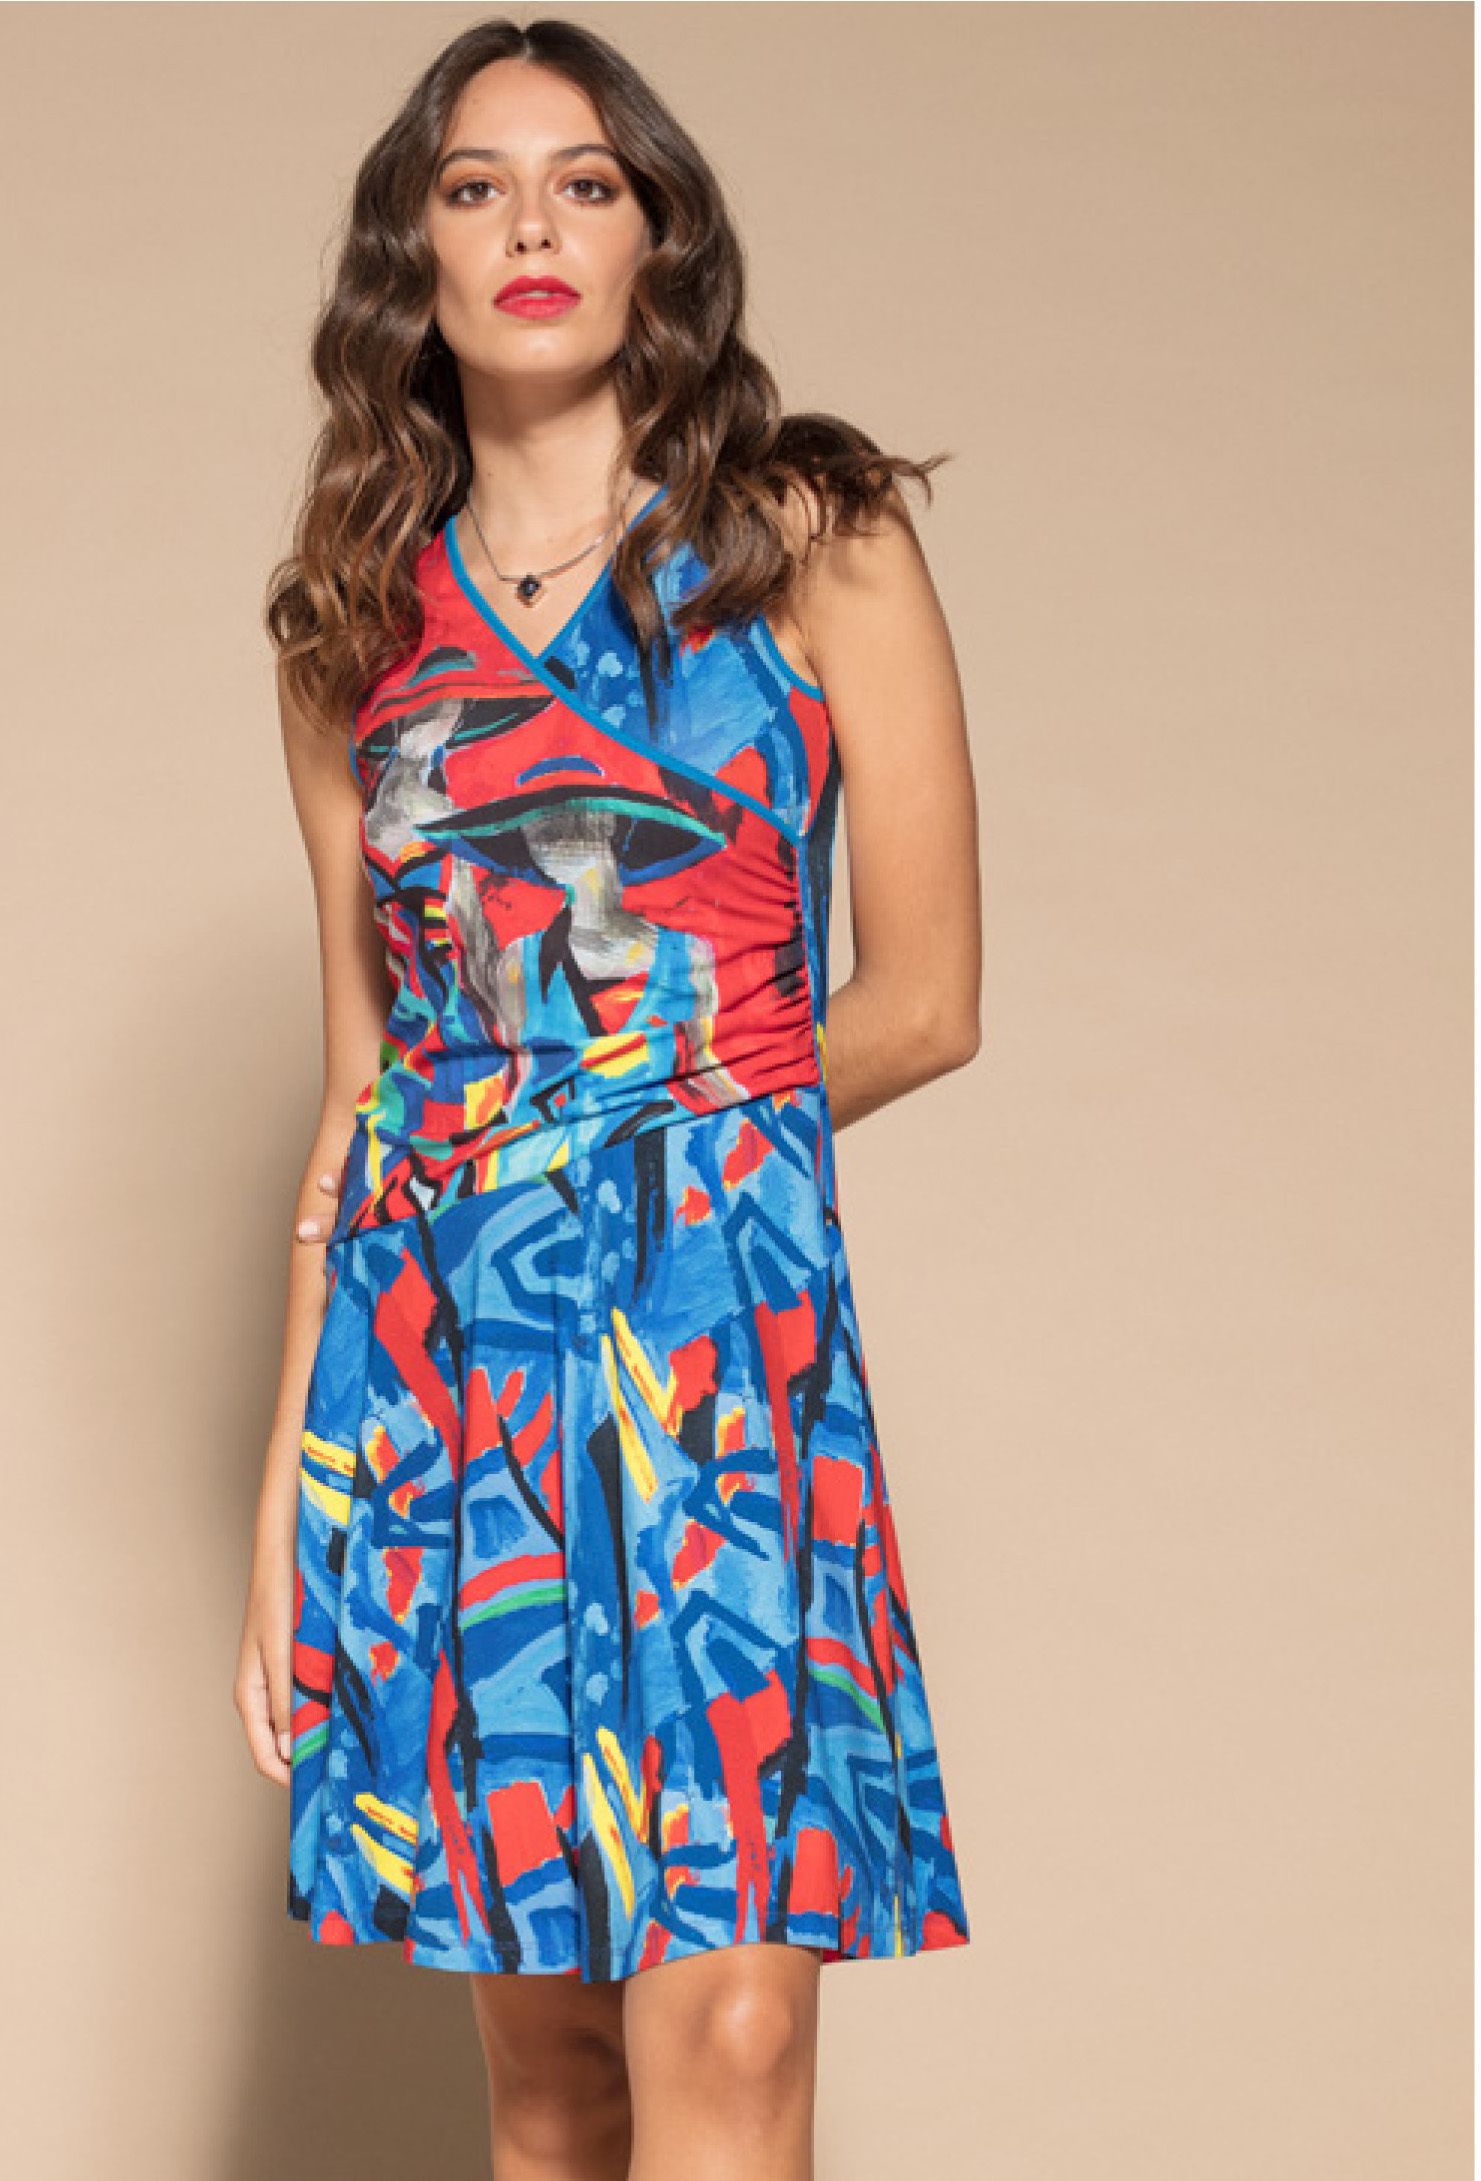 Maloka: Colors Of Picasso's Gypsy Beauty Abstract Art Crossover Dress MK_GIULLIA_N3